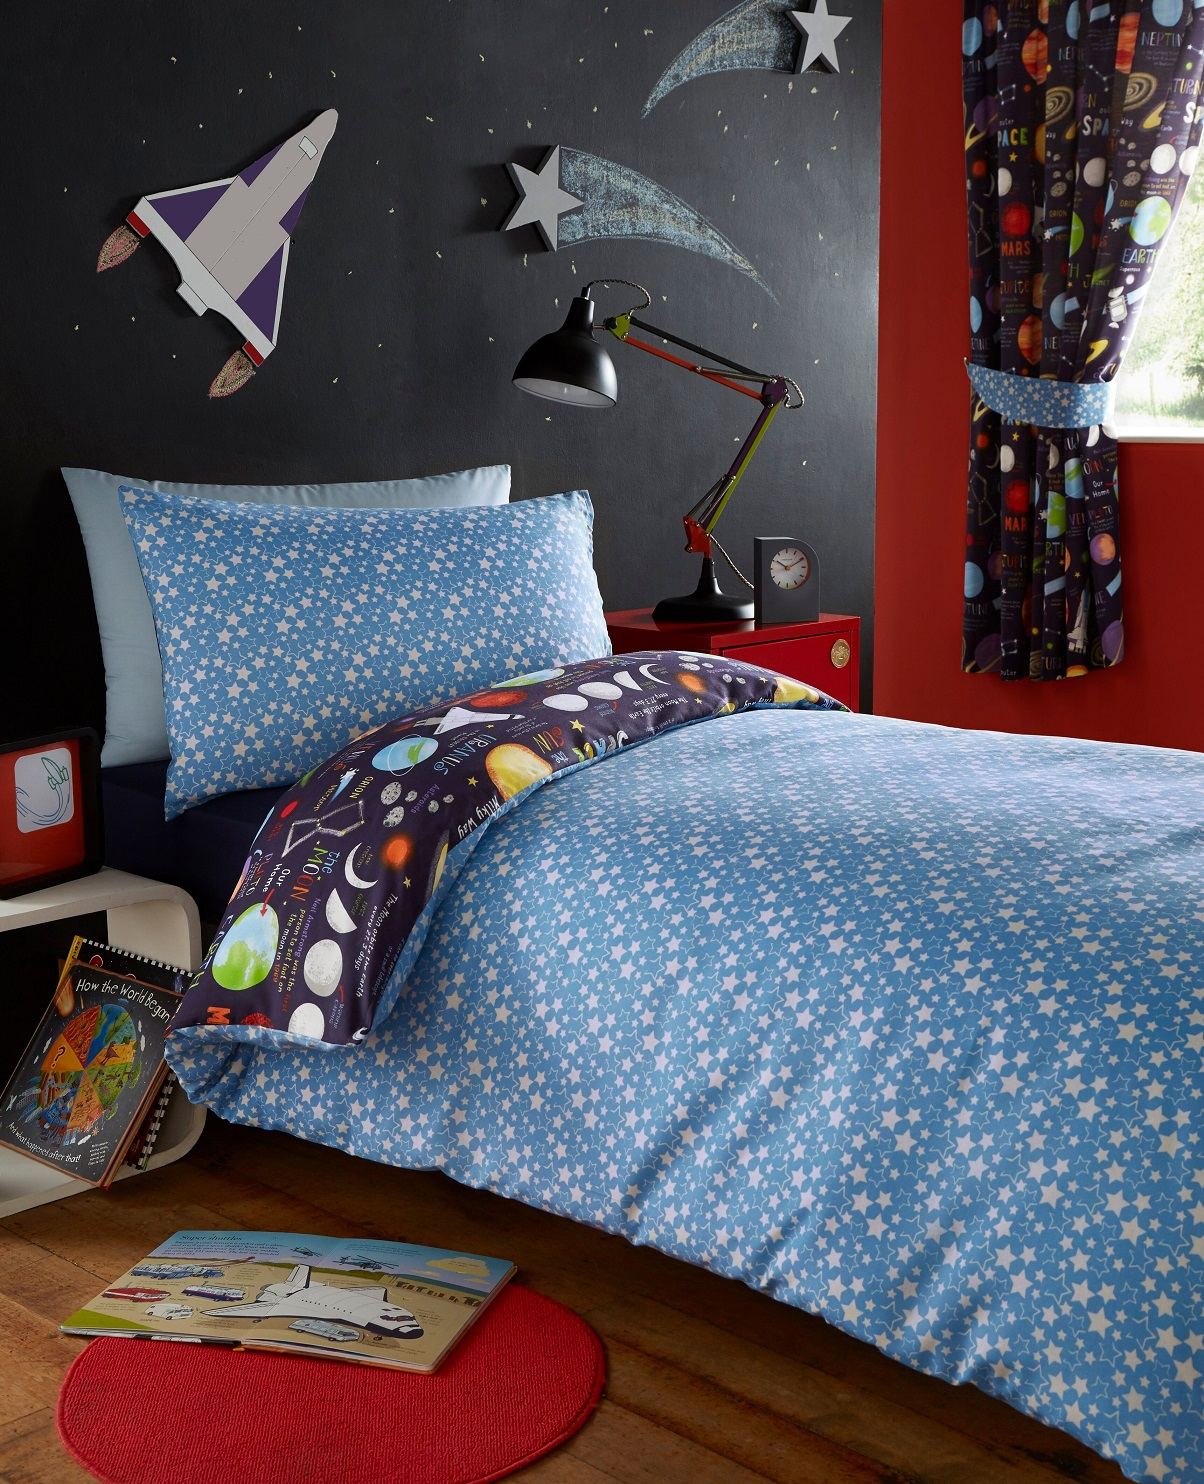 solar system bed sets - photo #25